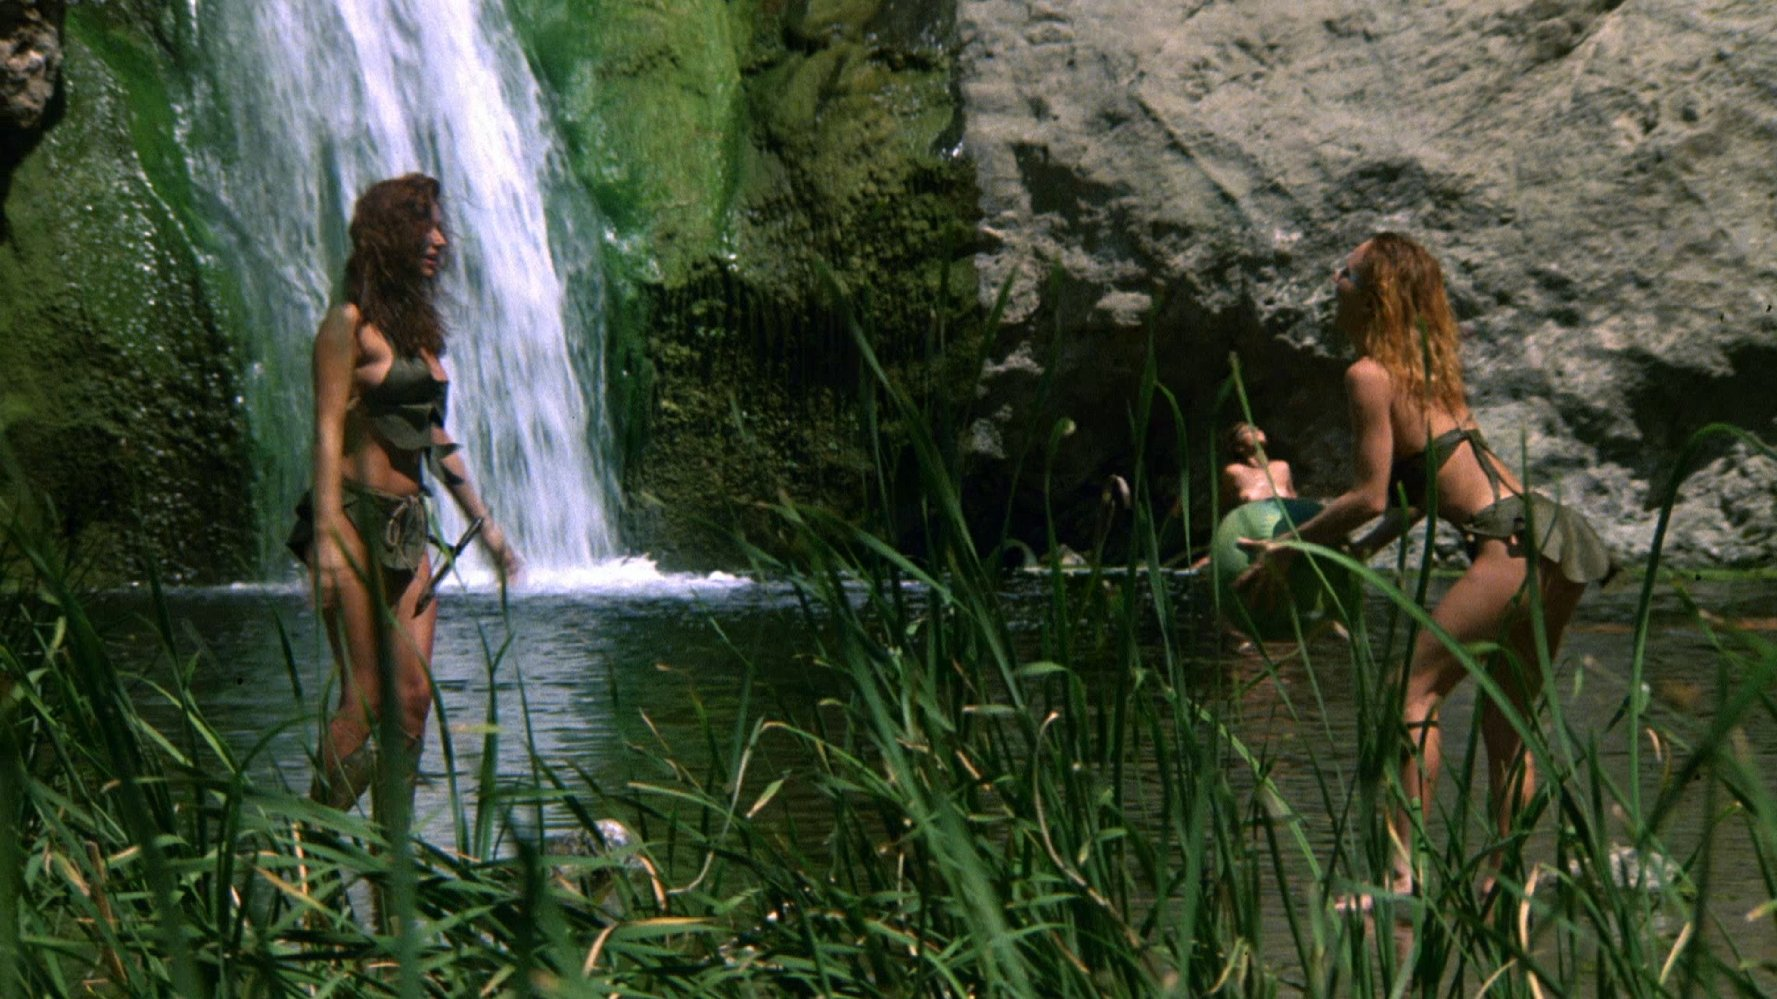 Women in jungle movies, carrie milbank hot